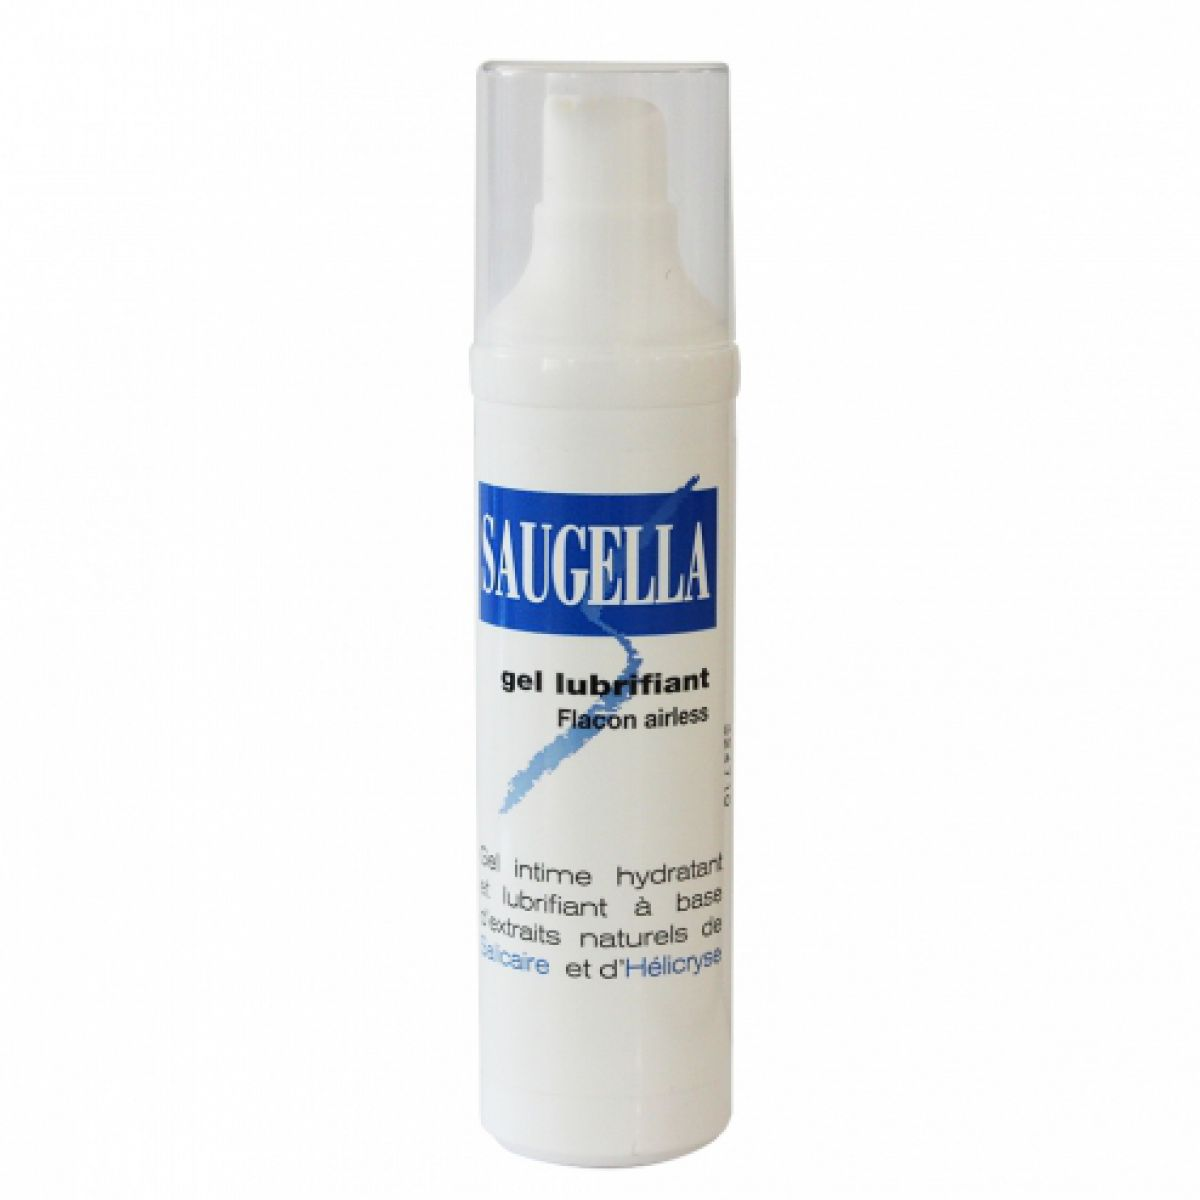 Saugella - Gel lubrifiant - 50 ml